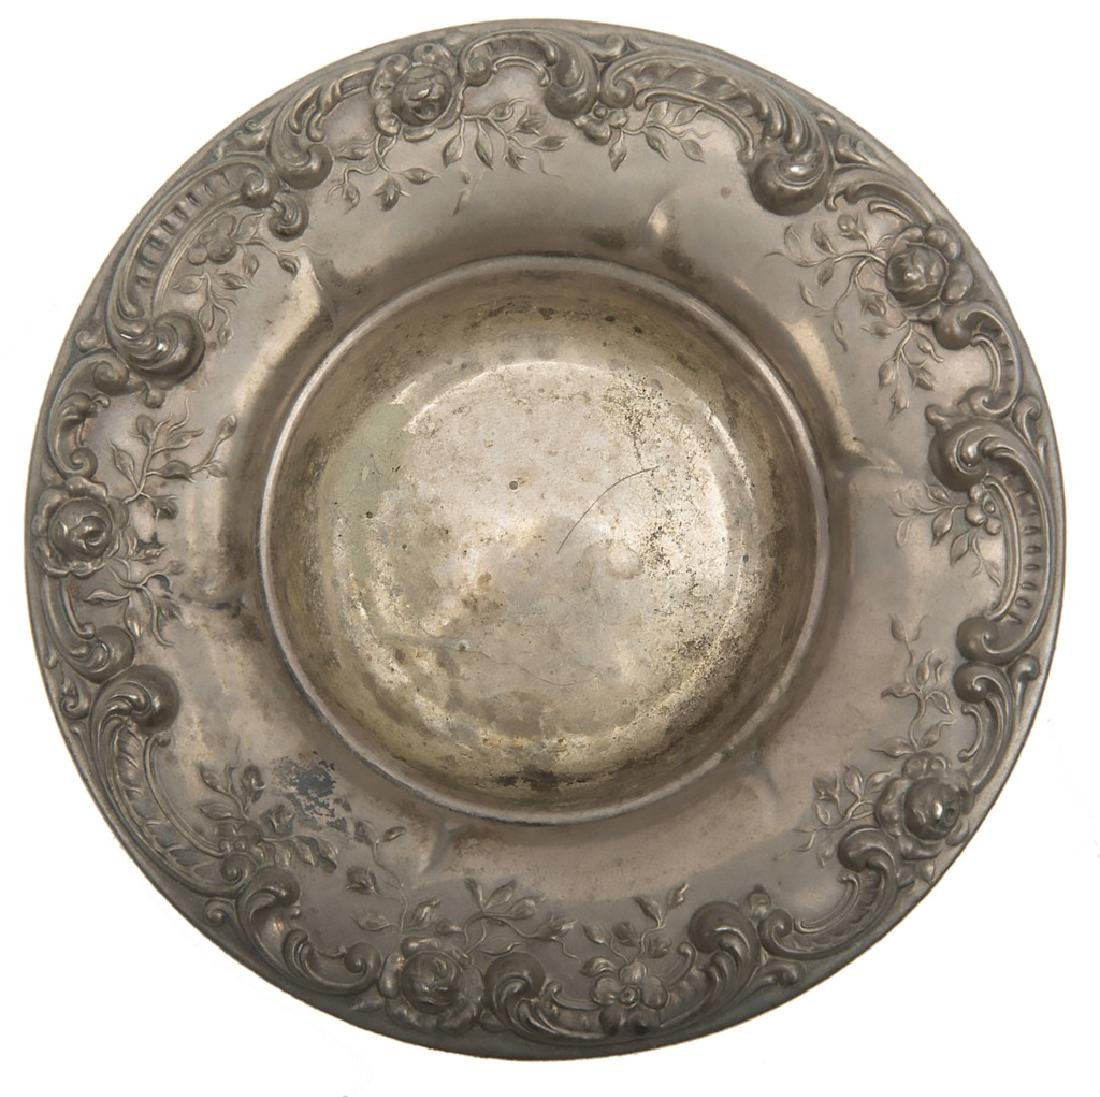 ALVIN STERLING SILVER ROSE MOTIF BOWL